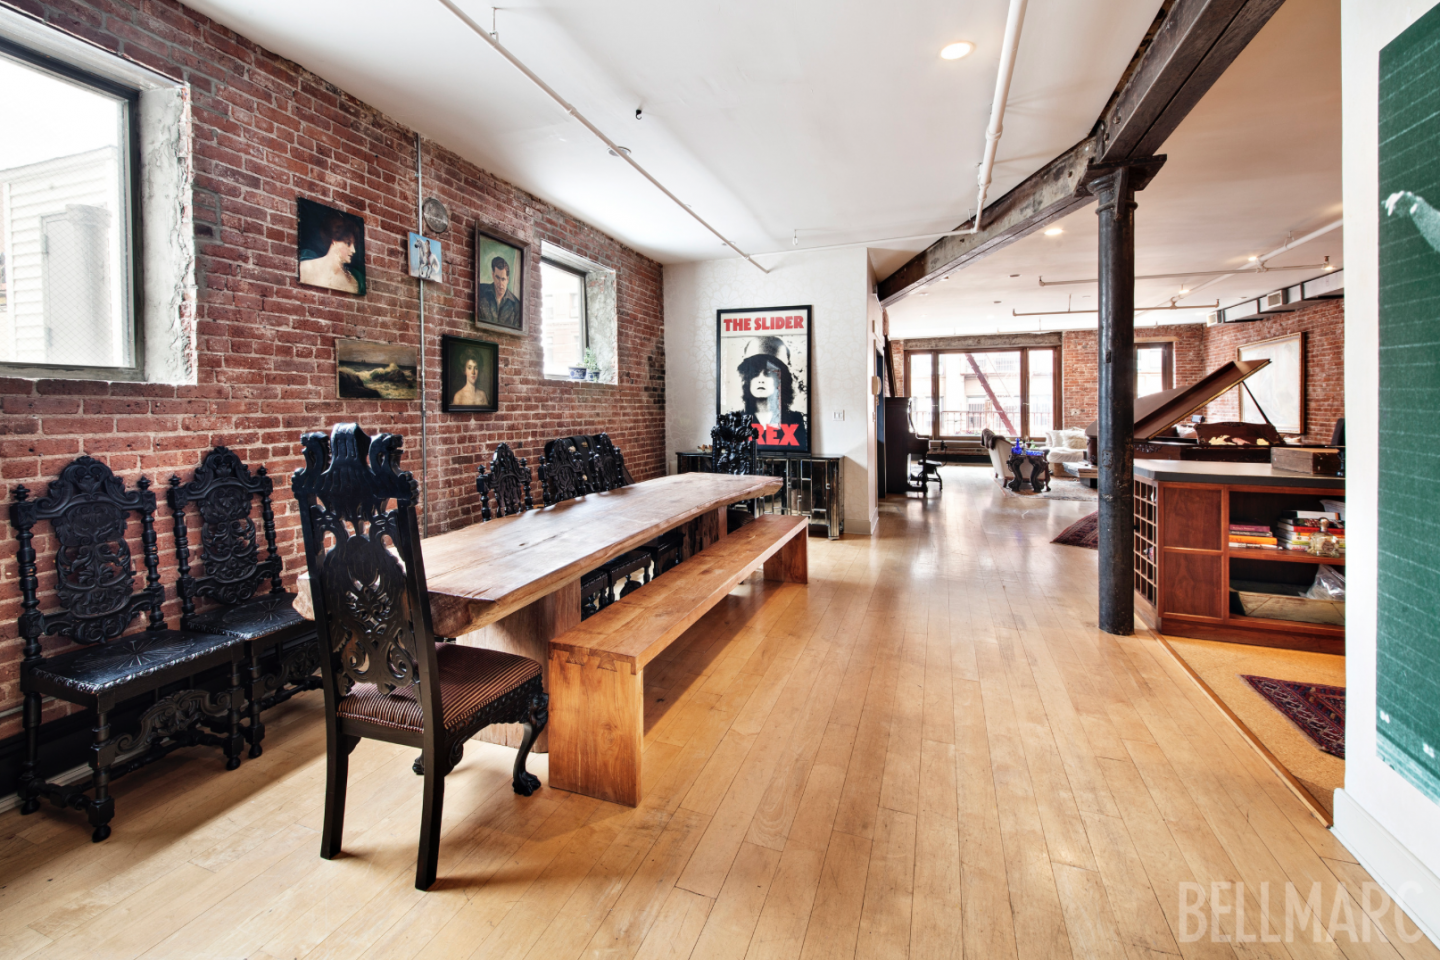 The loft boasts exposed brick walls, original iron columns,  and hardwood floors.